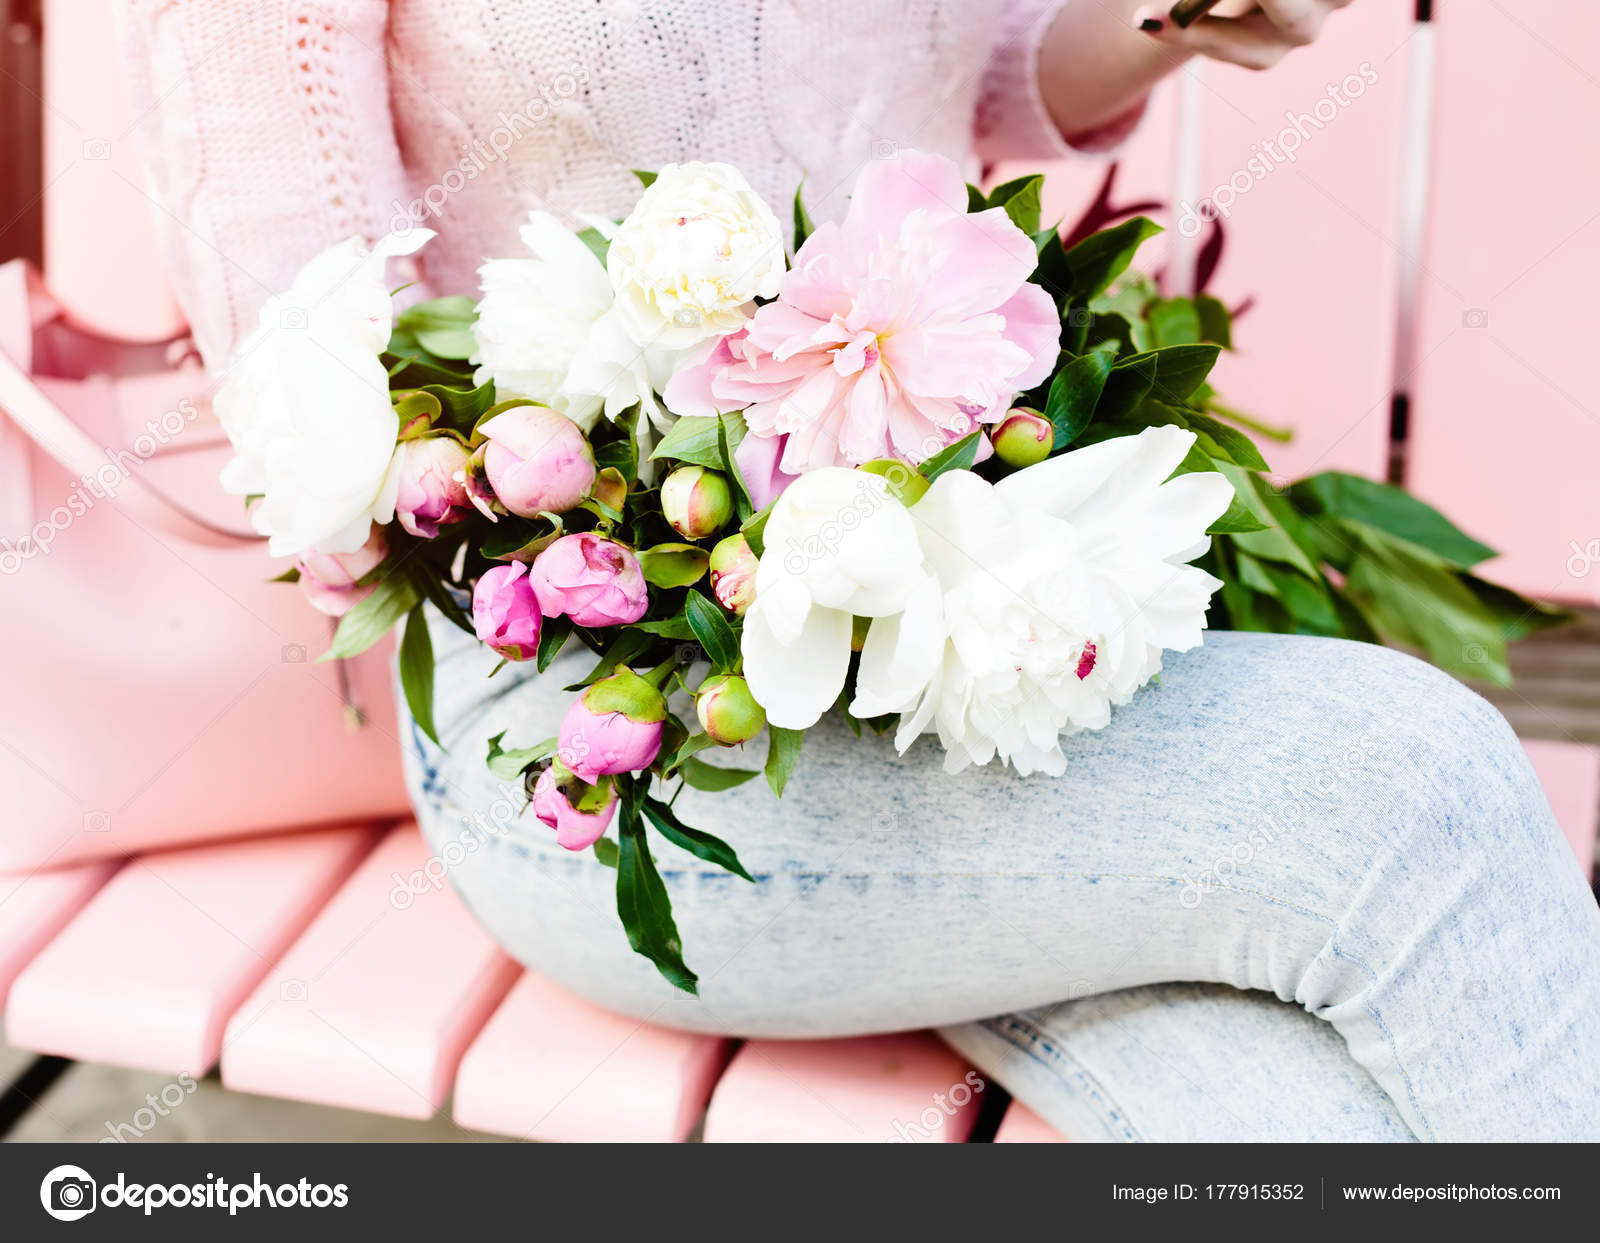 Young woman holding beautiful bunch peons her hands spring present young woman holding a beautiful bunch of peons in her hands spring present for a girl in a jeans outfit flowers bouquet outdoor cafe izmirmasajfo